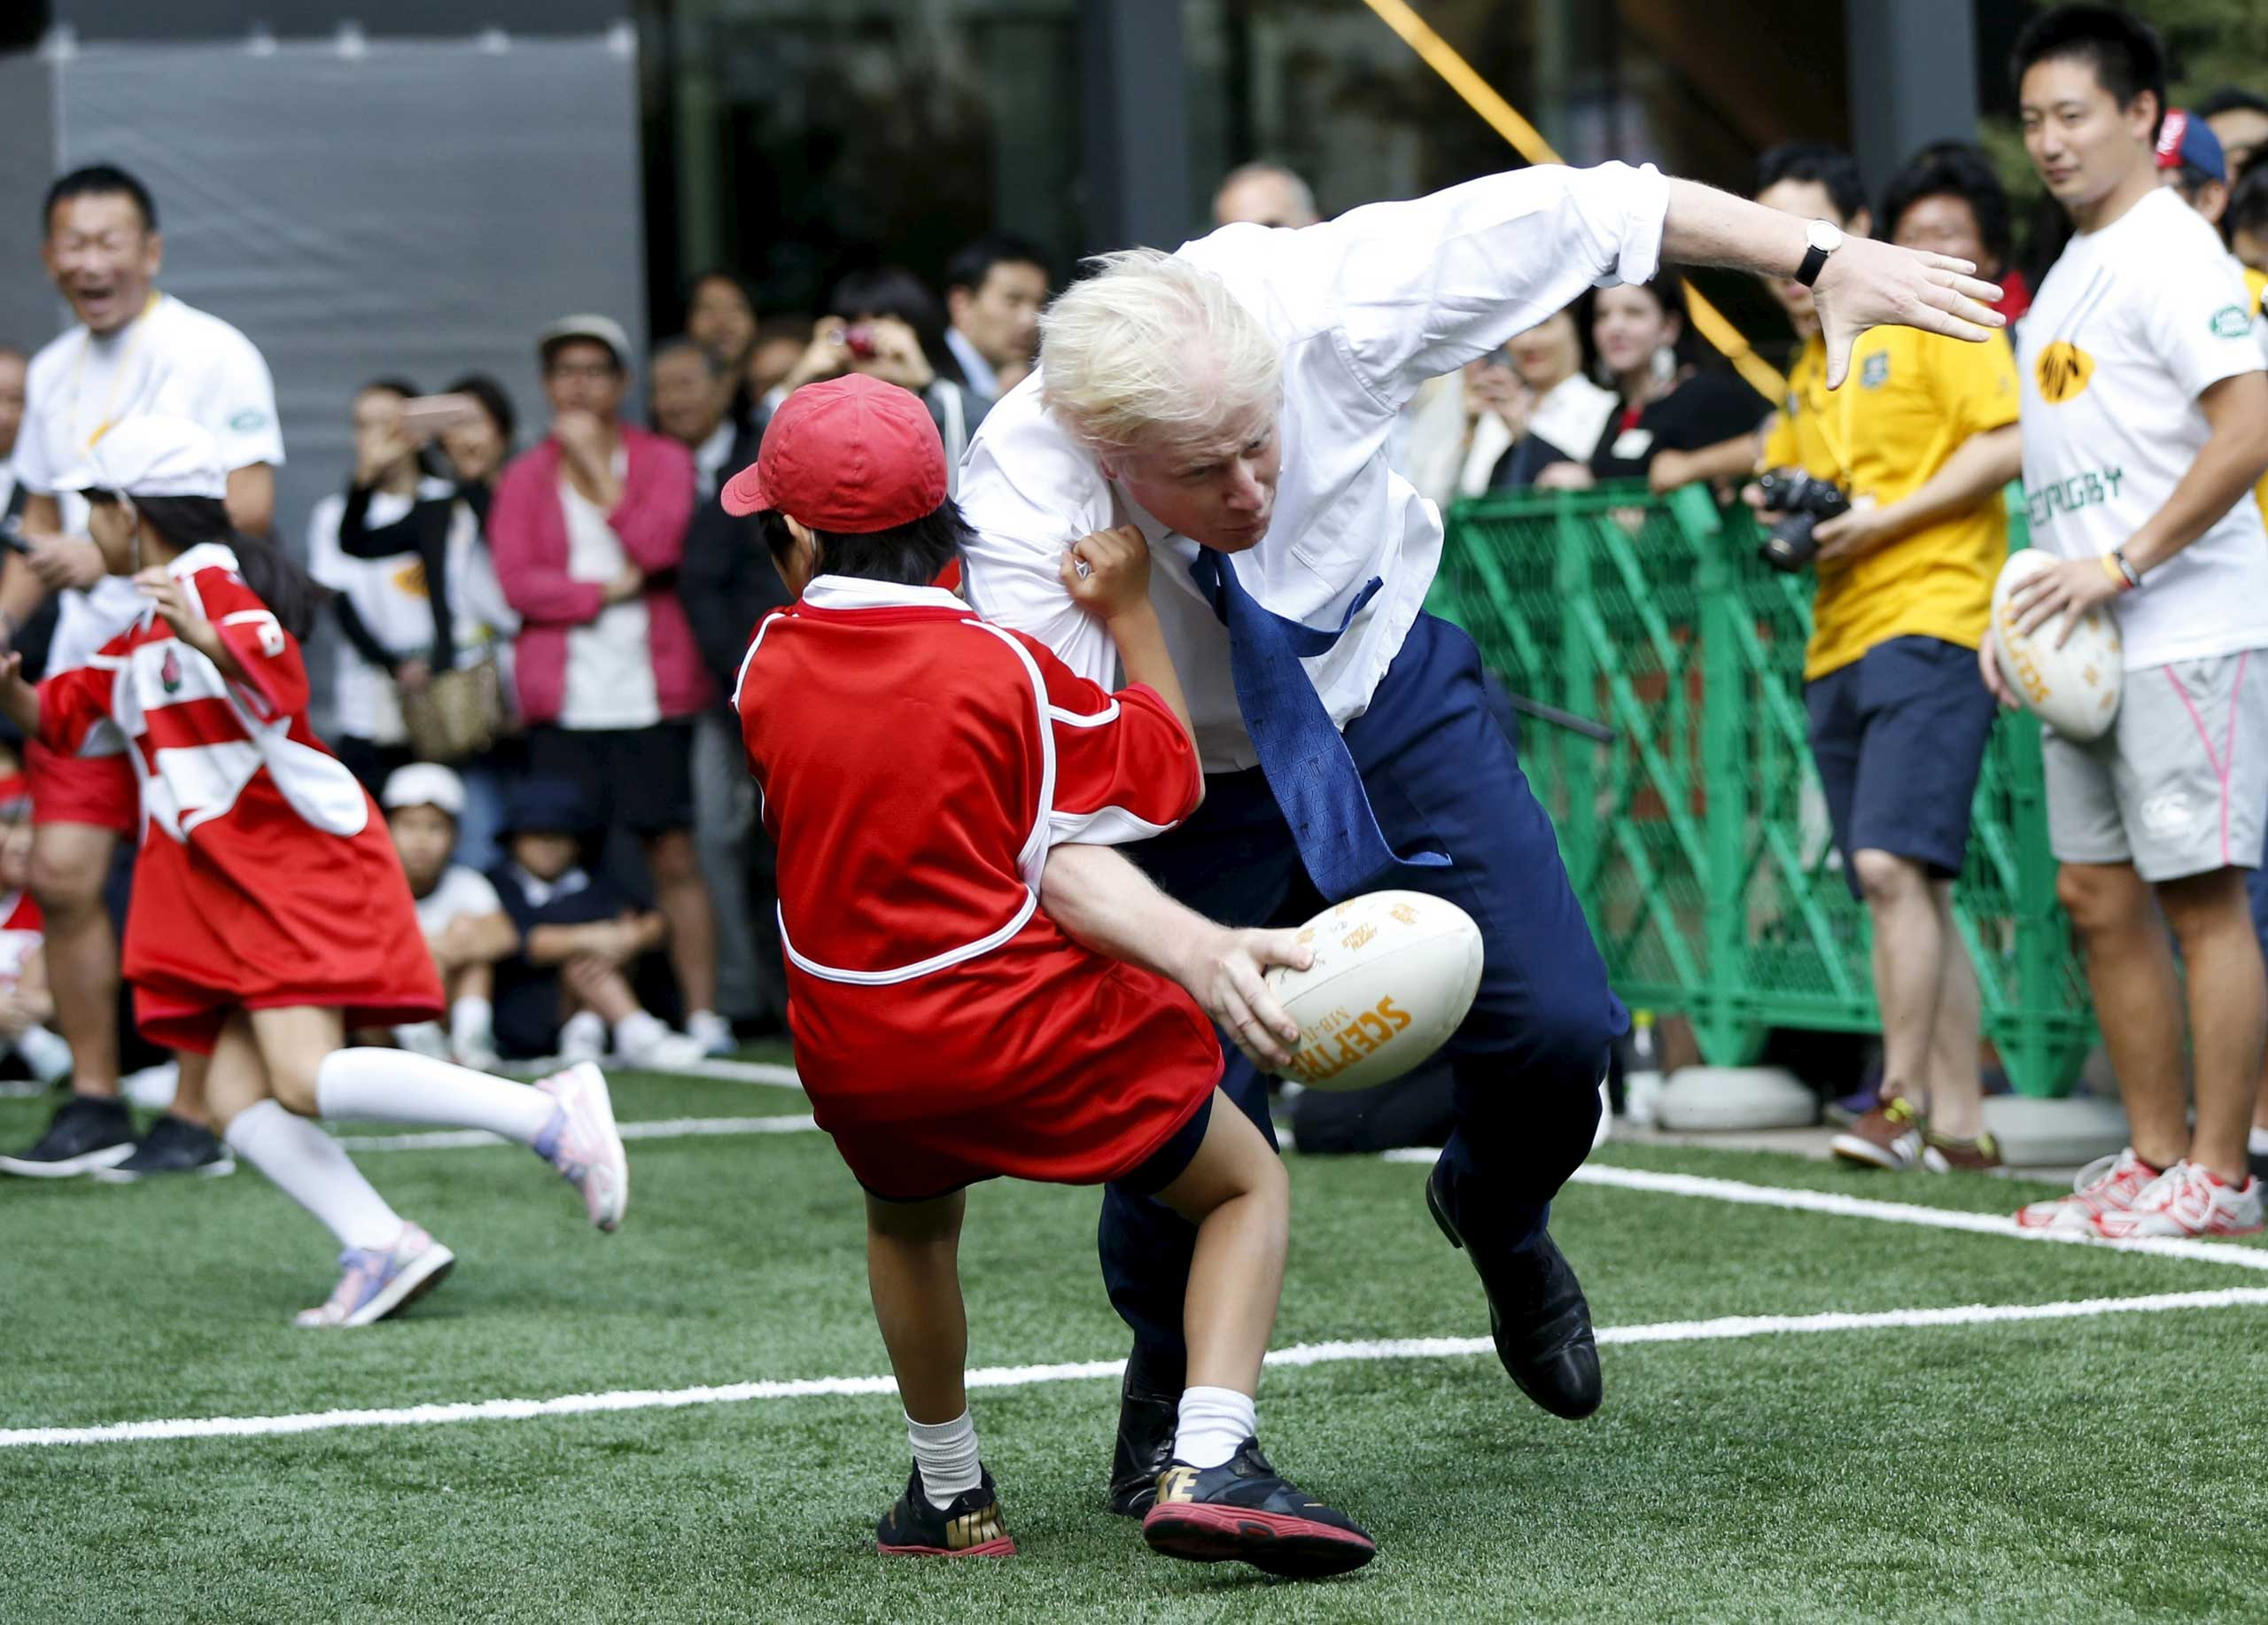 London's Mayor Boris Johnson collides with 10-year-old Toki Sekiguchi during a game of Street Rugby with a group of Tokyo children, outside the Tokyo Square Gardens building, on Oct. 15, 2015.